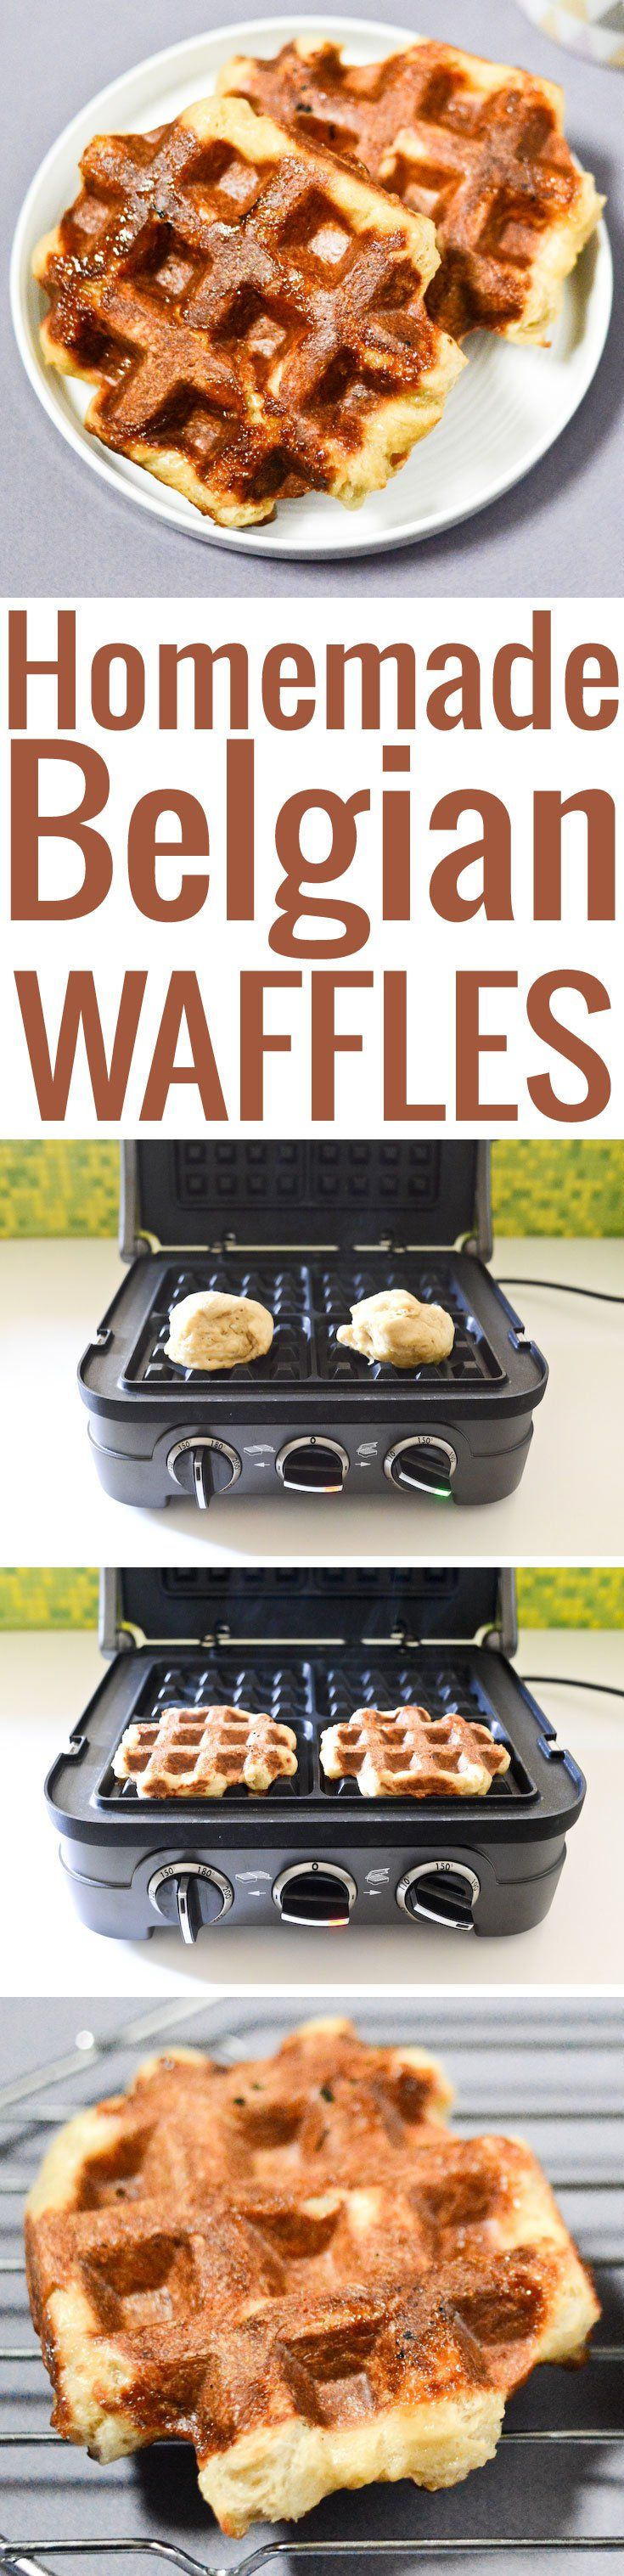 An easy recipe to make Belgian waffles in the artisanal style of Liège: caramelized, chewy, irresistible!